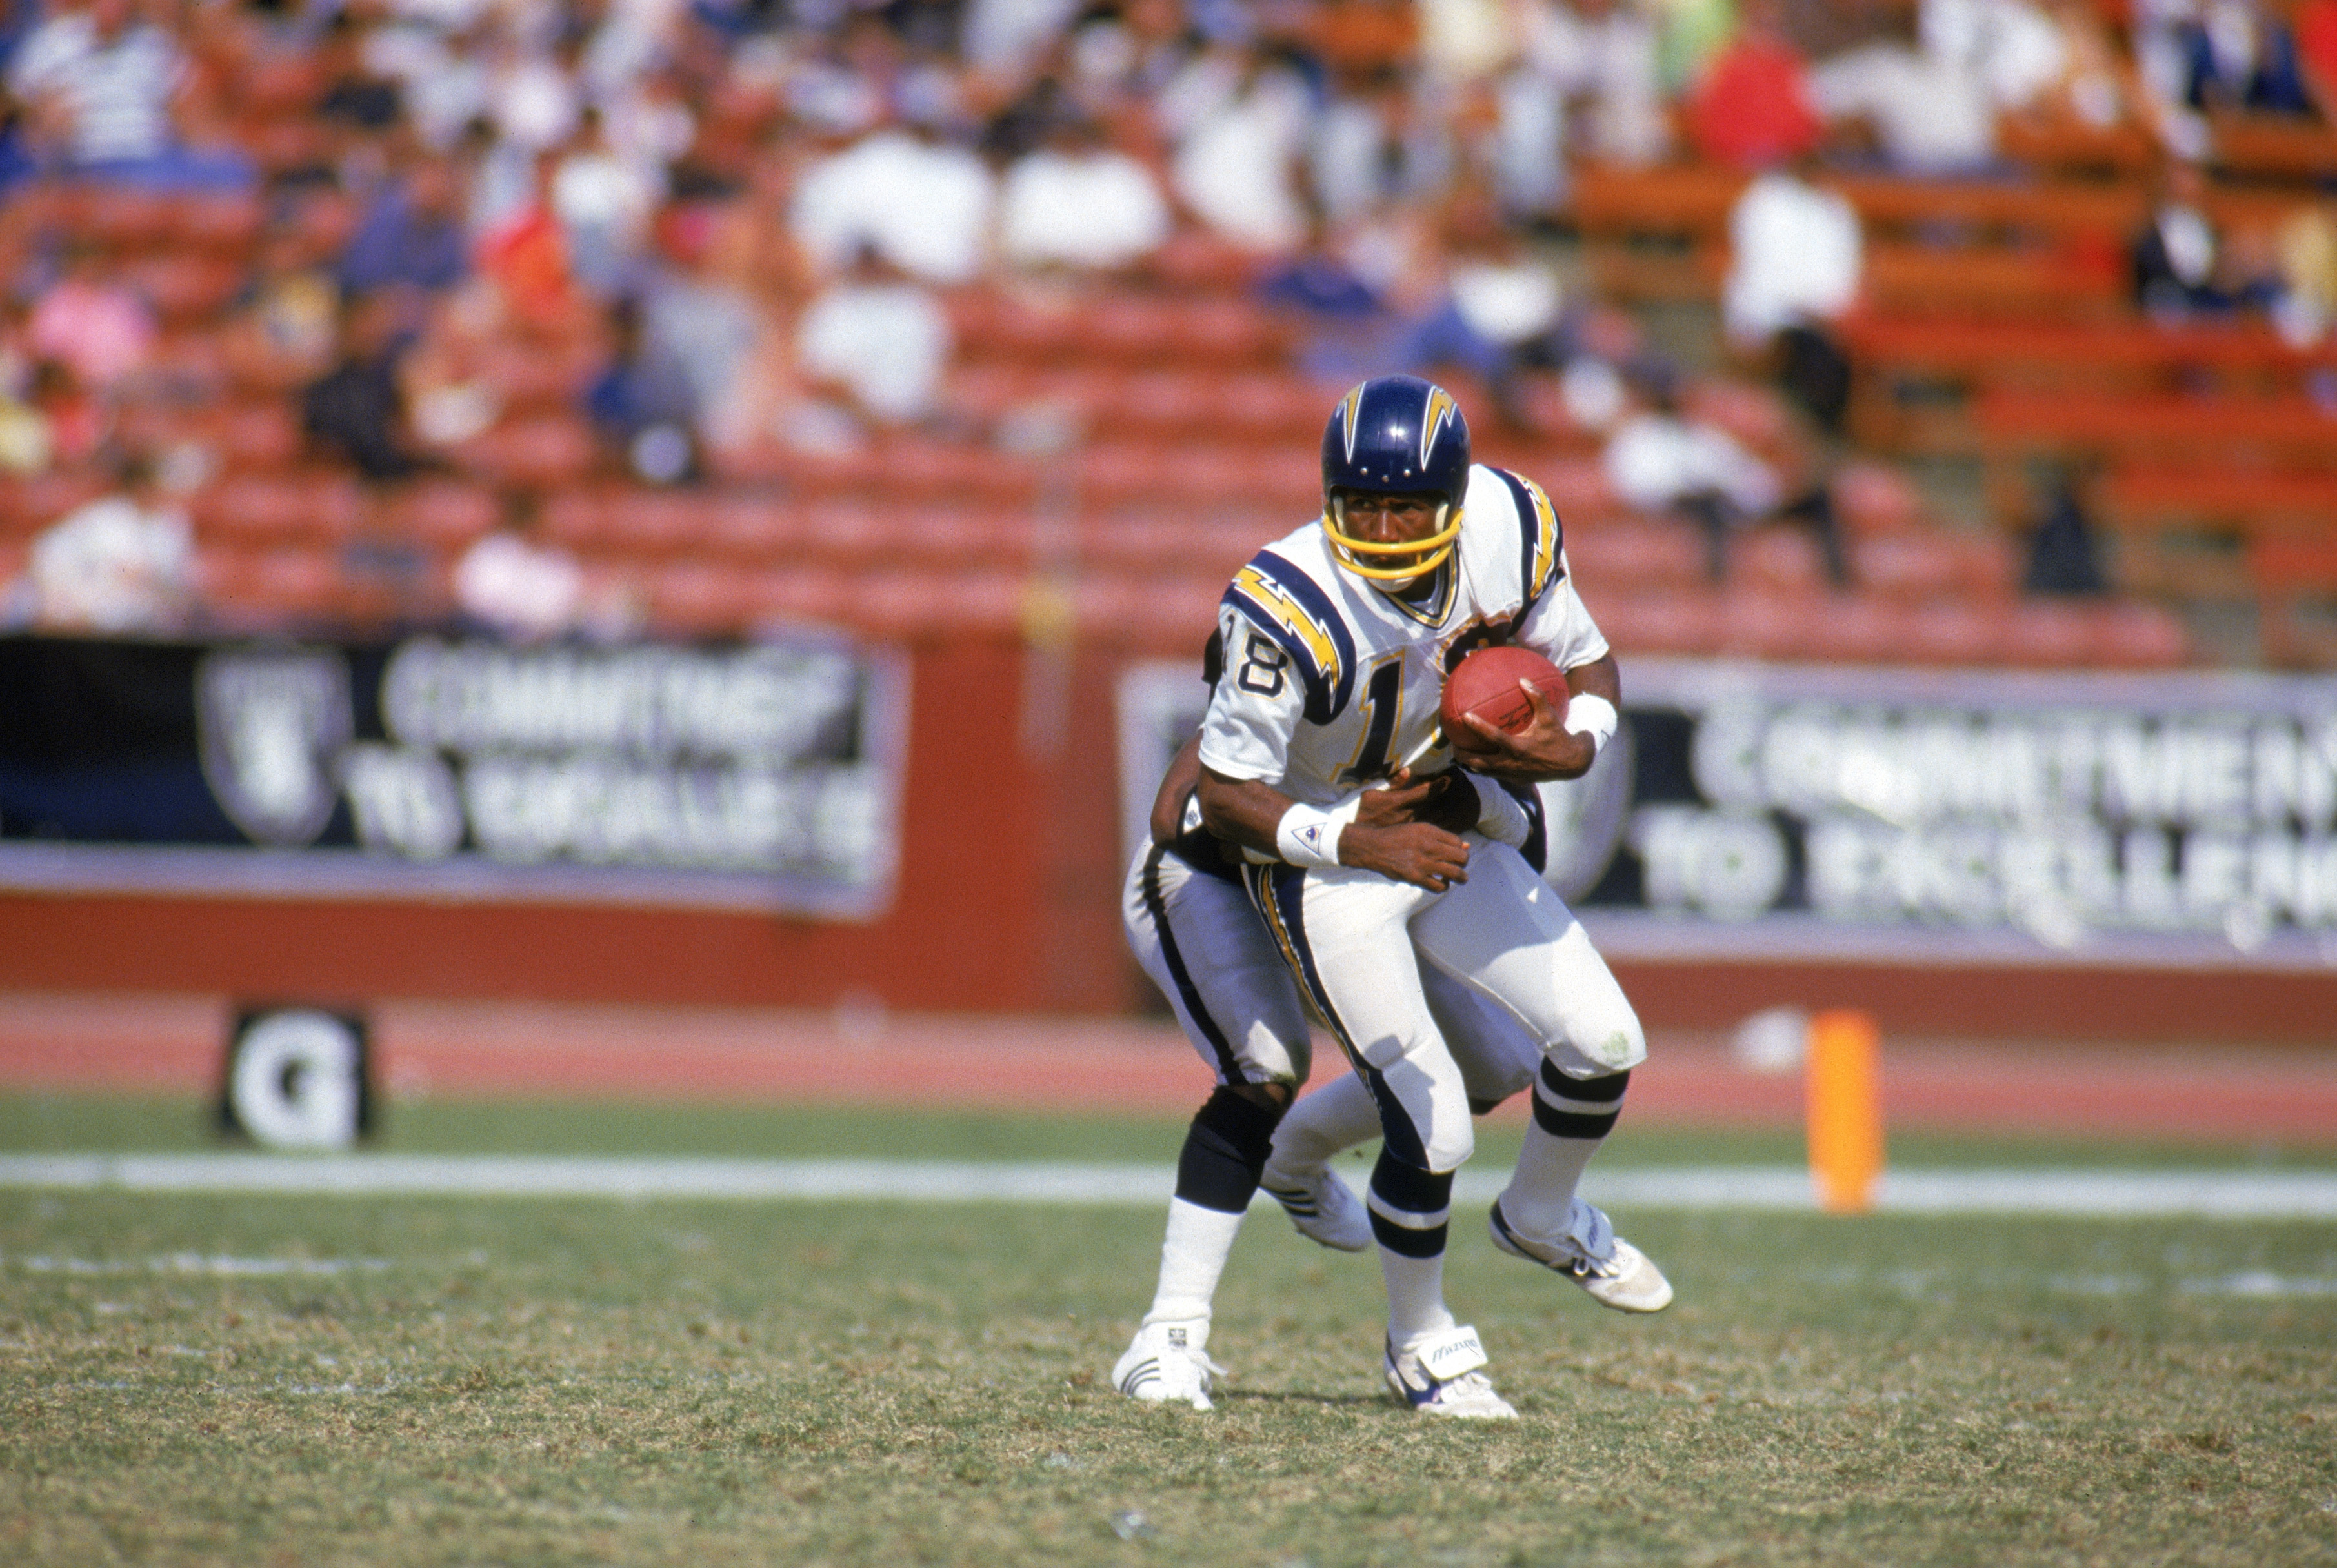 LOS ANGELES - 1985:  Wide receiver Charlie Joiner #18 of the San Diego Chargers tries to break away from a tackle during a game against the Los Angeles Raiders in 1985 at Los Angeles Memorial Coliseum in Los Angeles, California.  (Photo by Rick Stewart/Ge